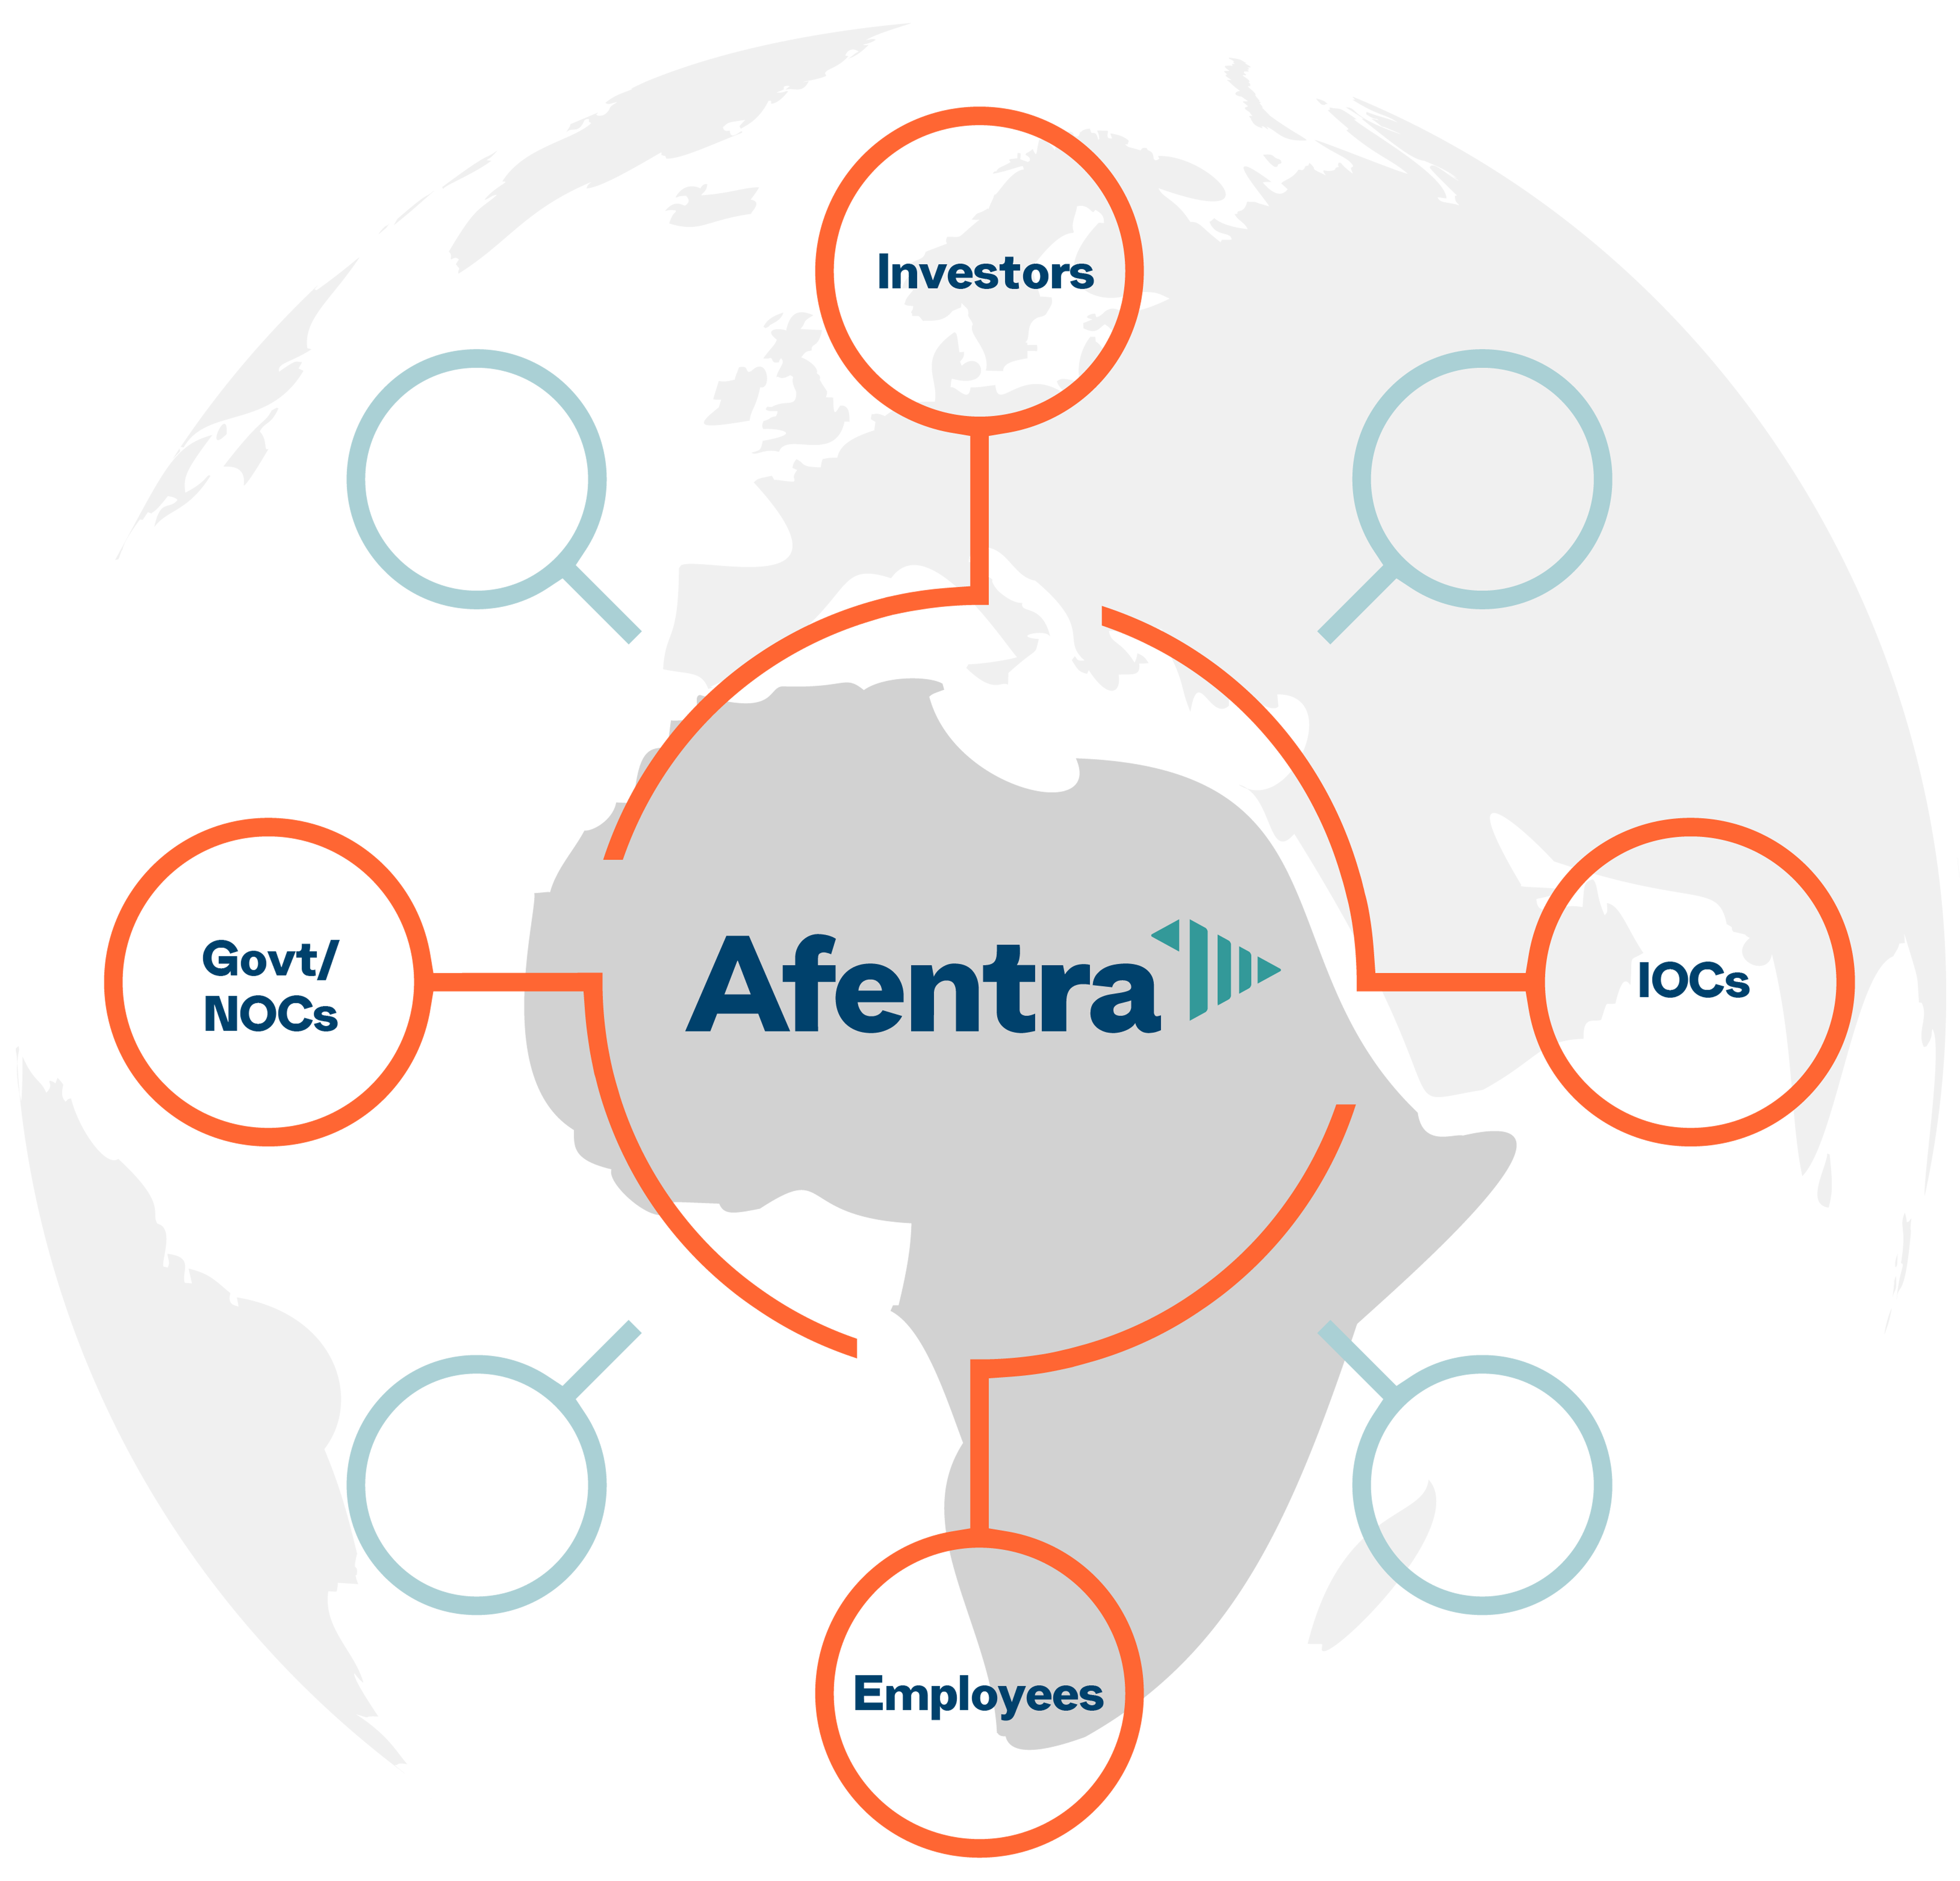 A diagram to display Afentra's four stakeholder audiences